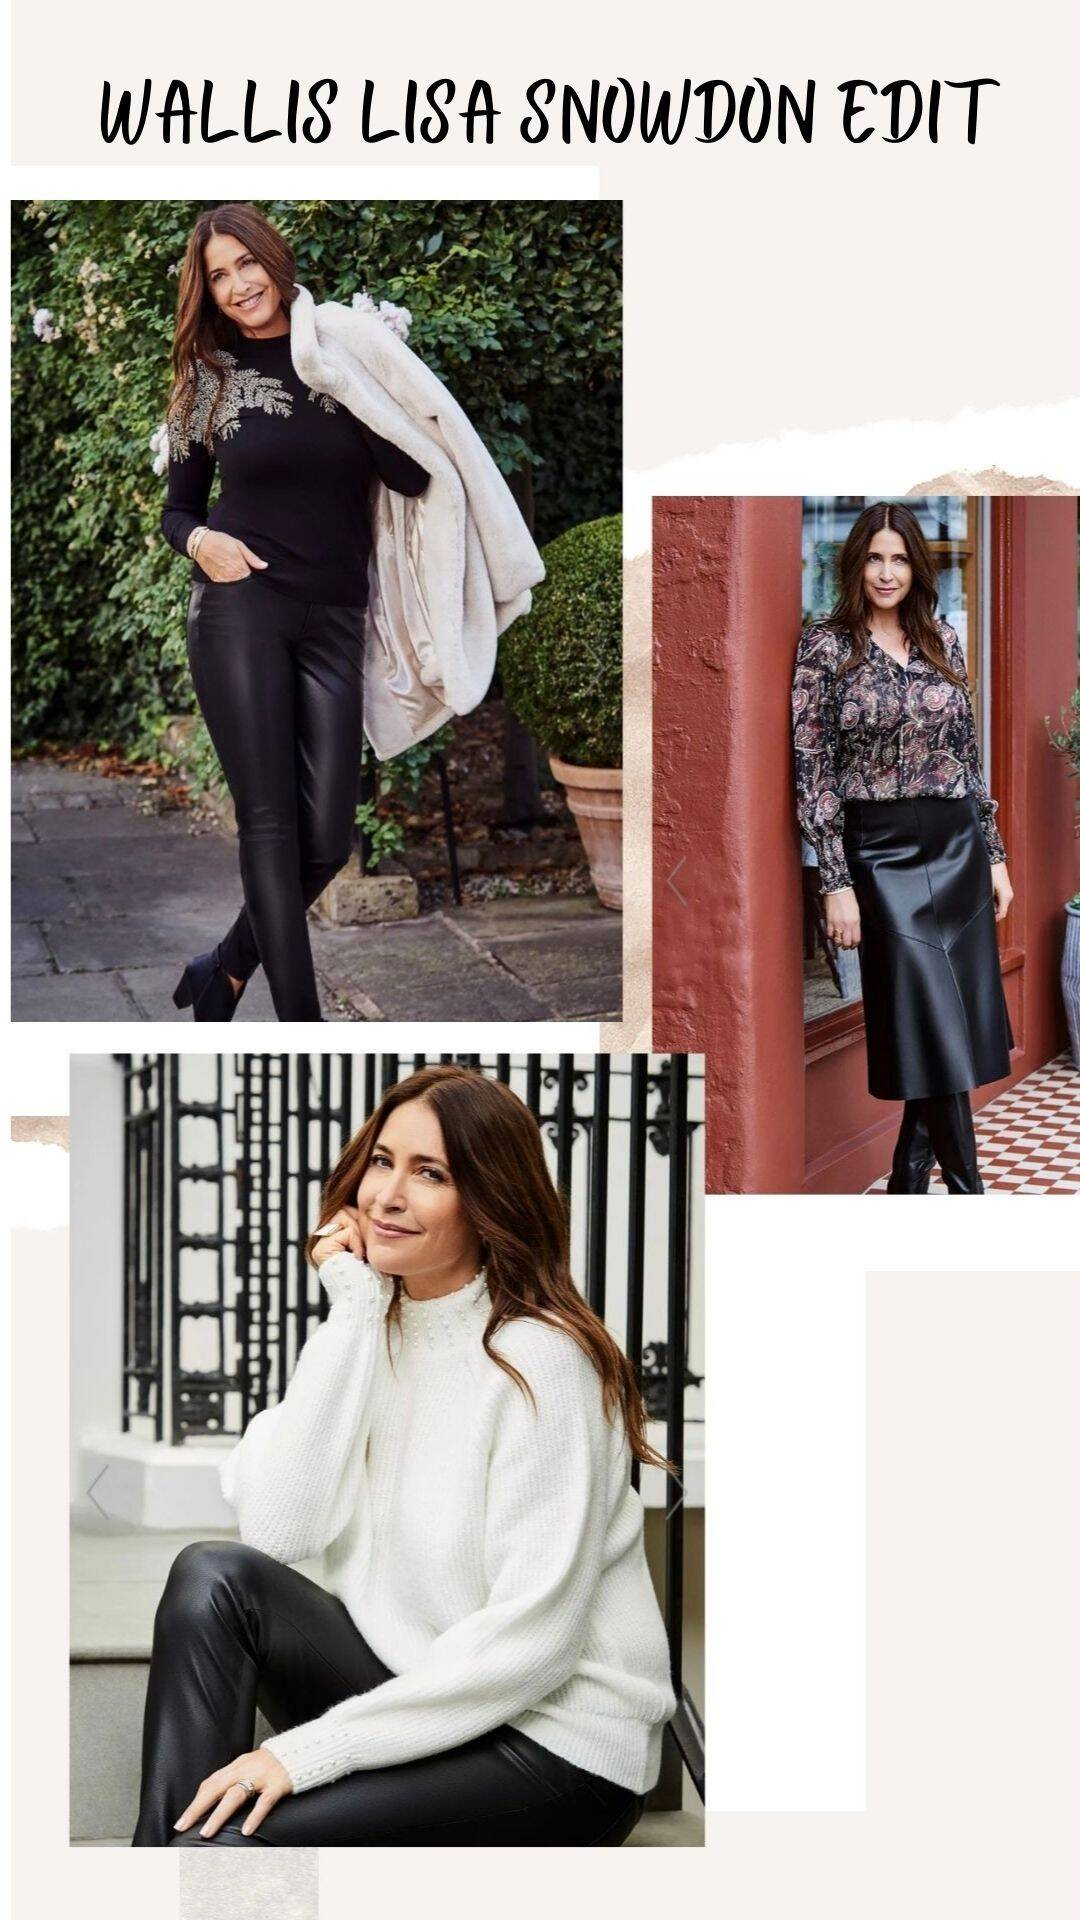 wallis-lisa-snowdon-edit